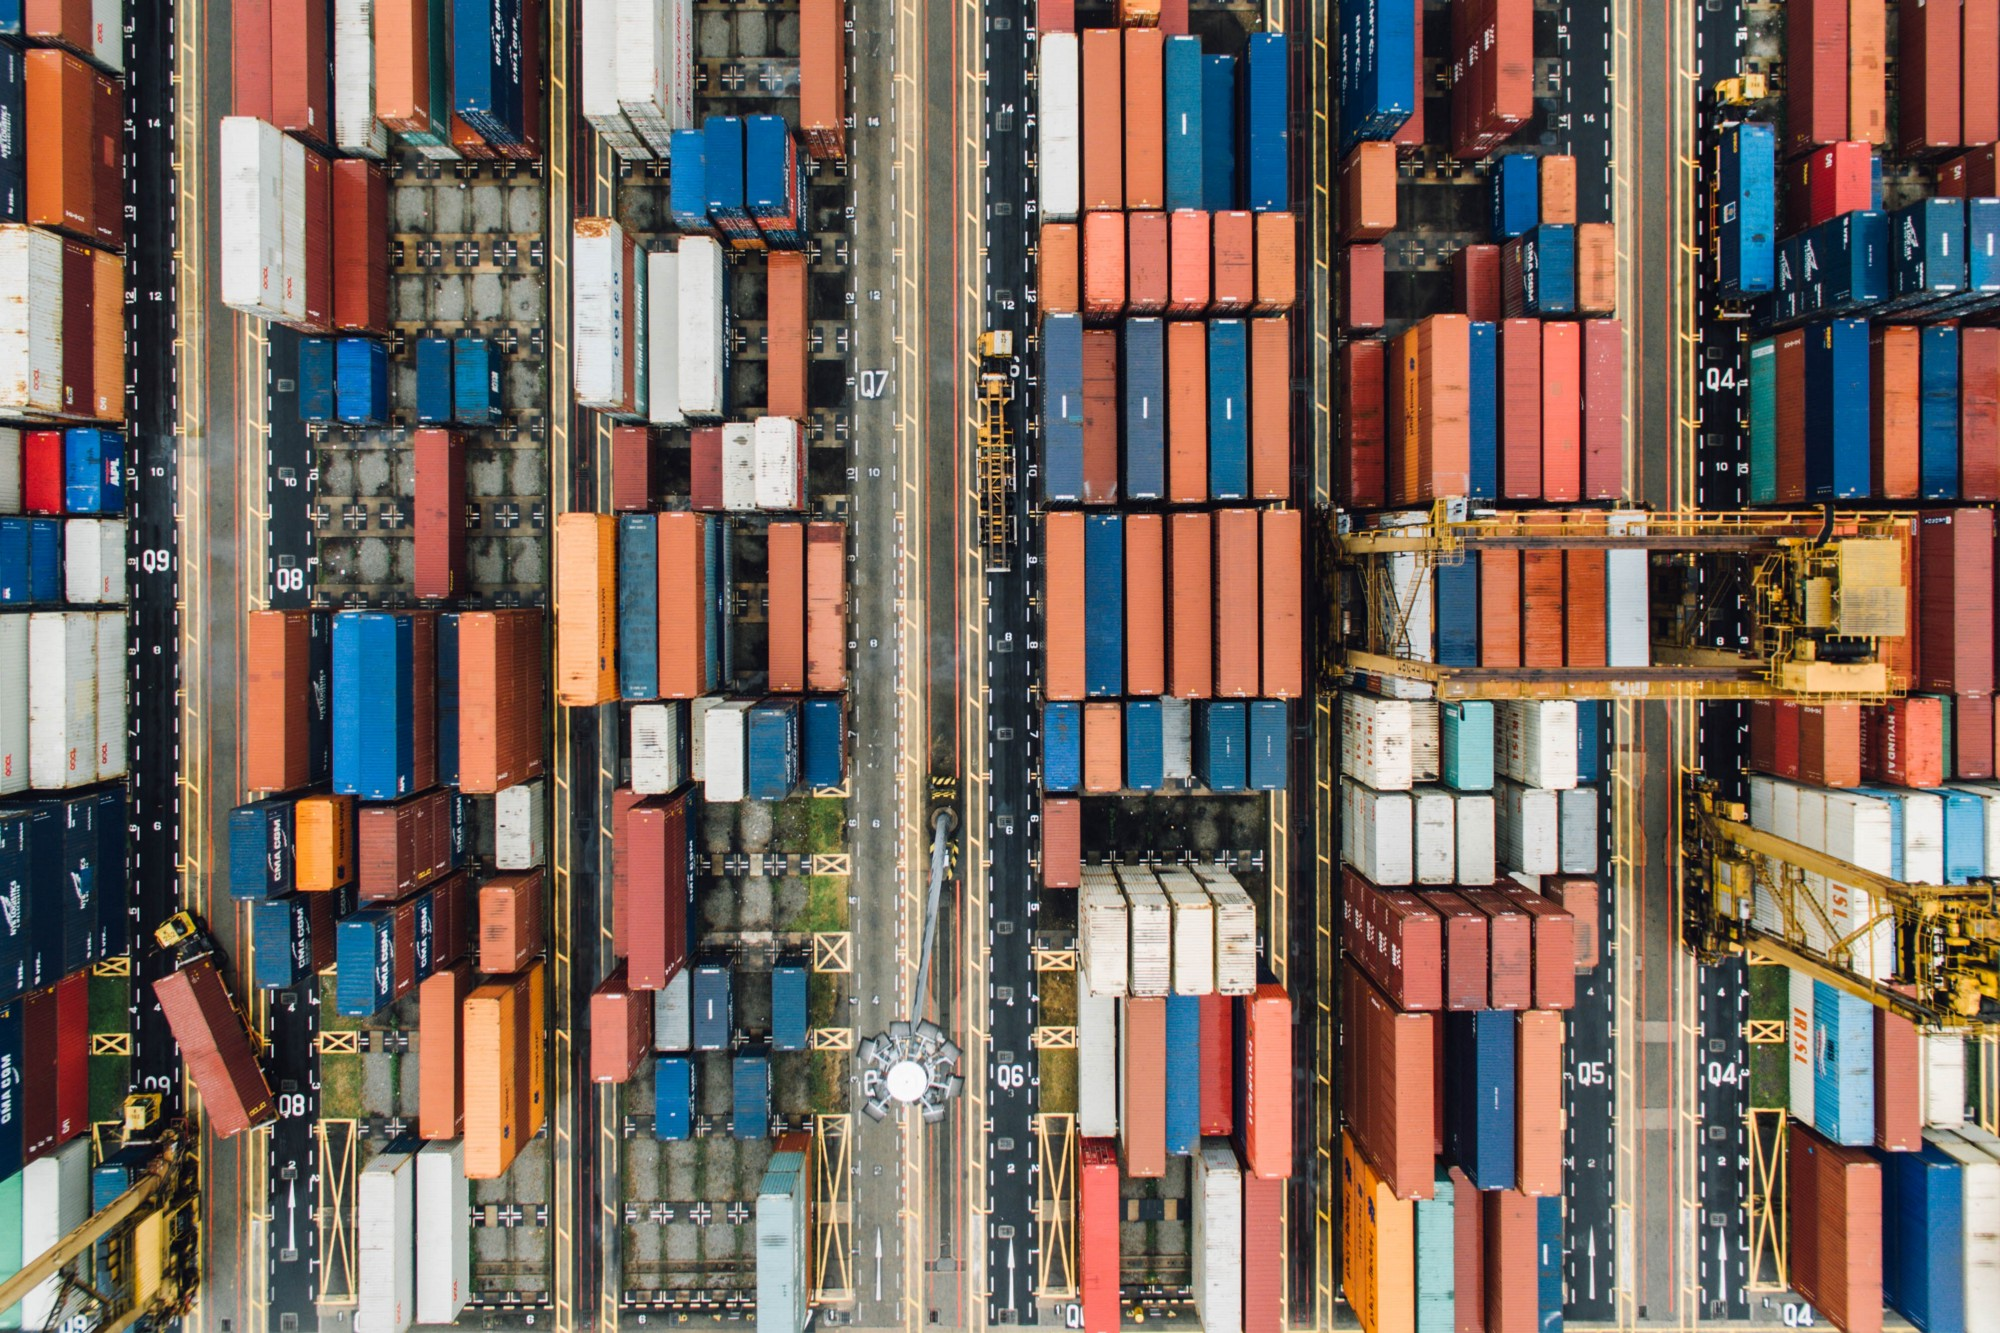 High traffic view of a ship yard showing many containers and coordination between them.